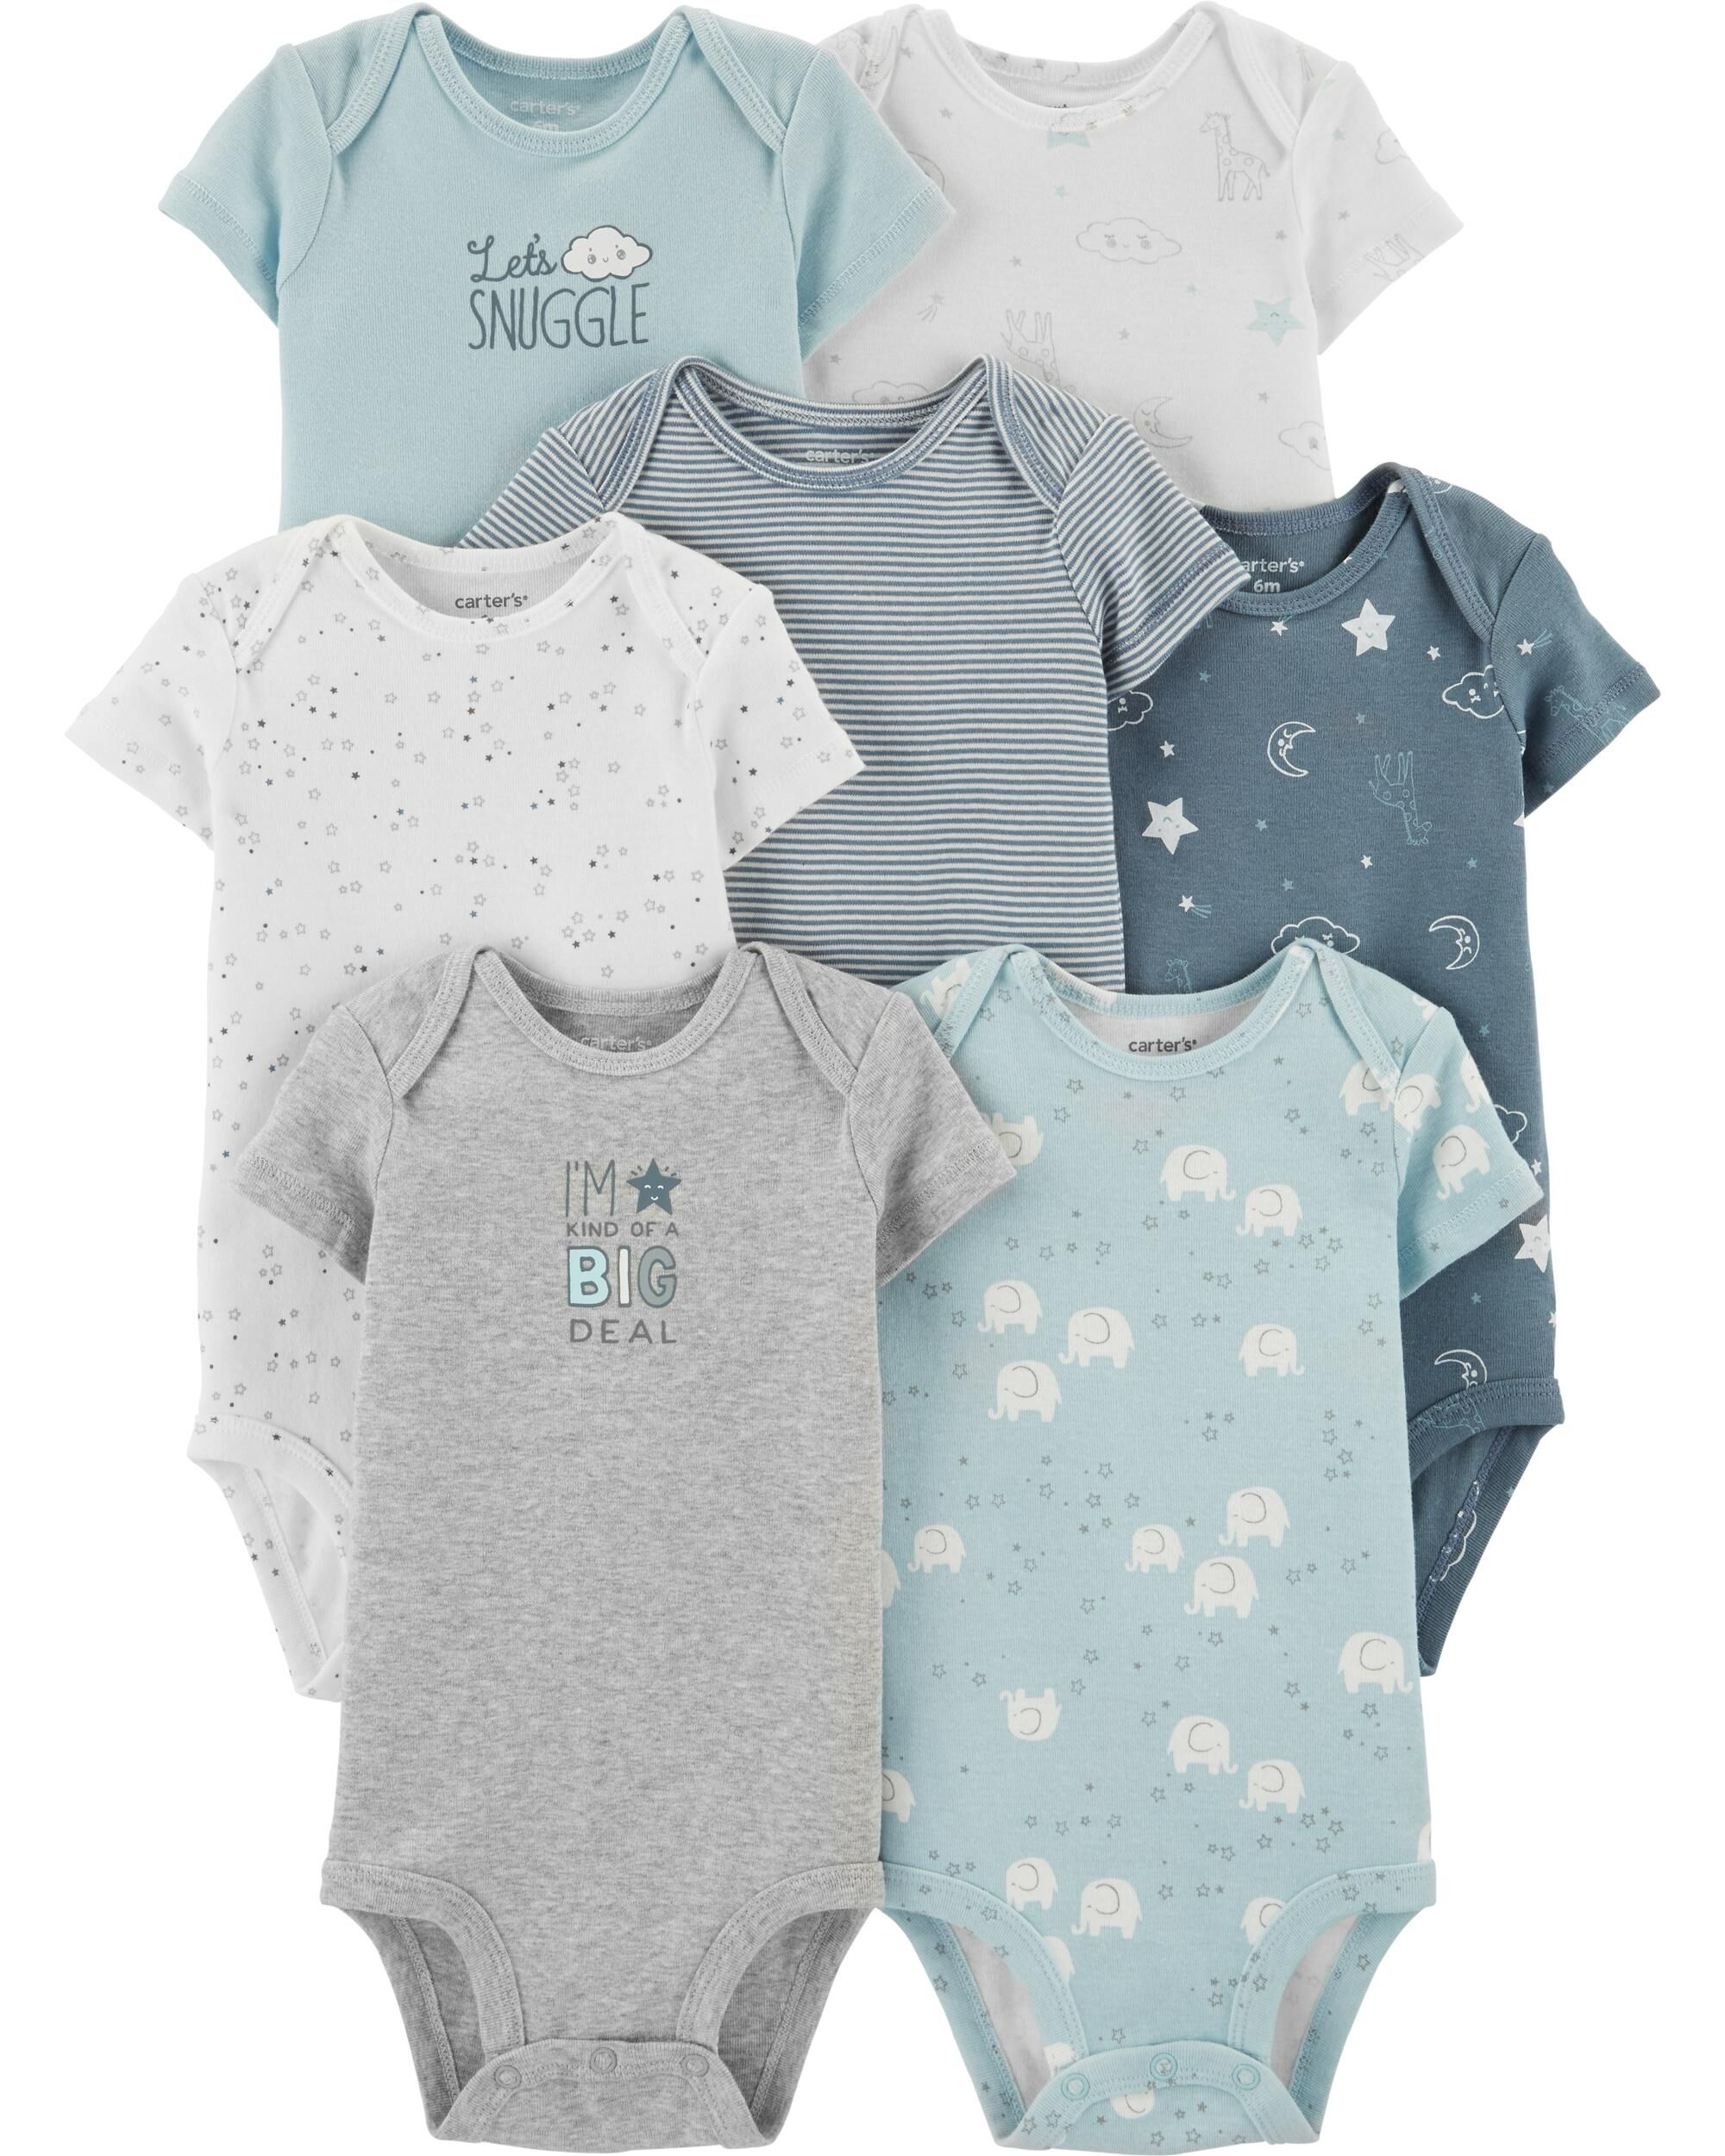 Carter's Baby Original Bodysuits: 6 to 7-Pack (various styles)